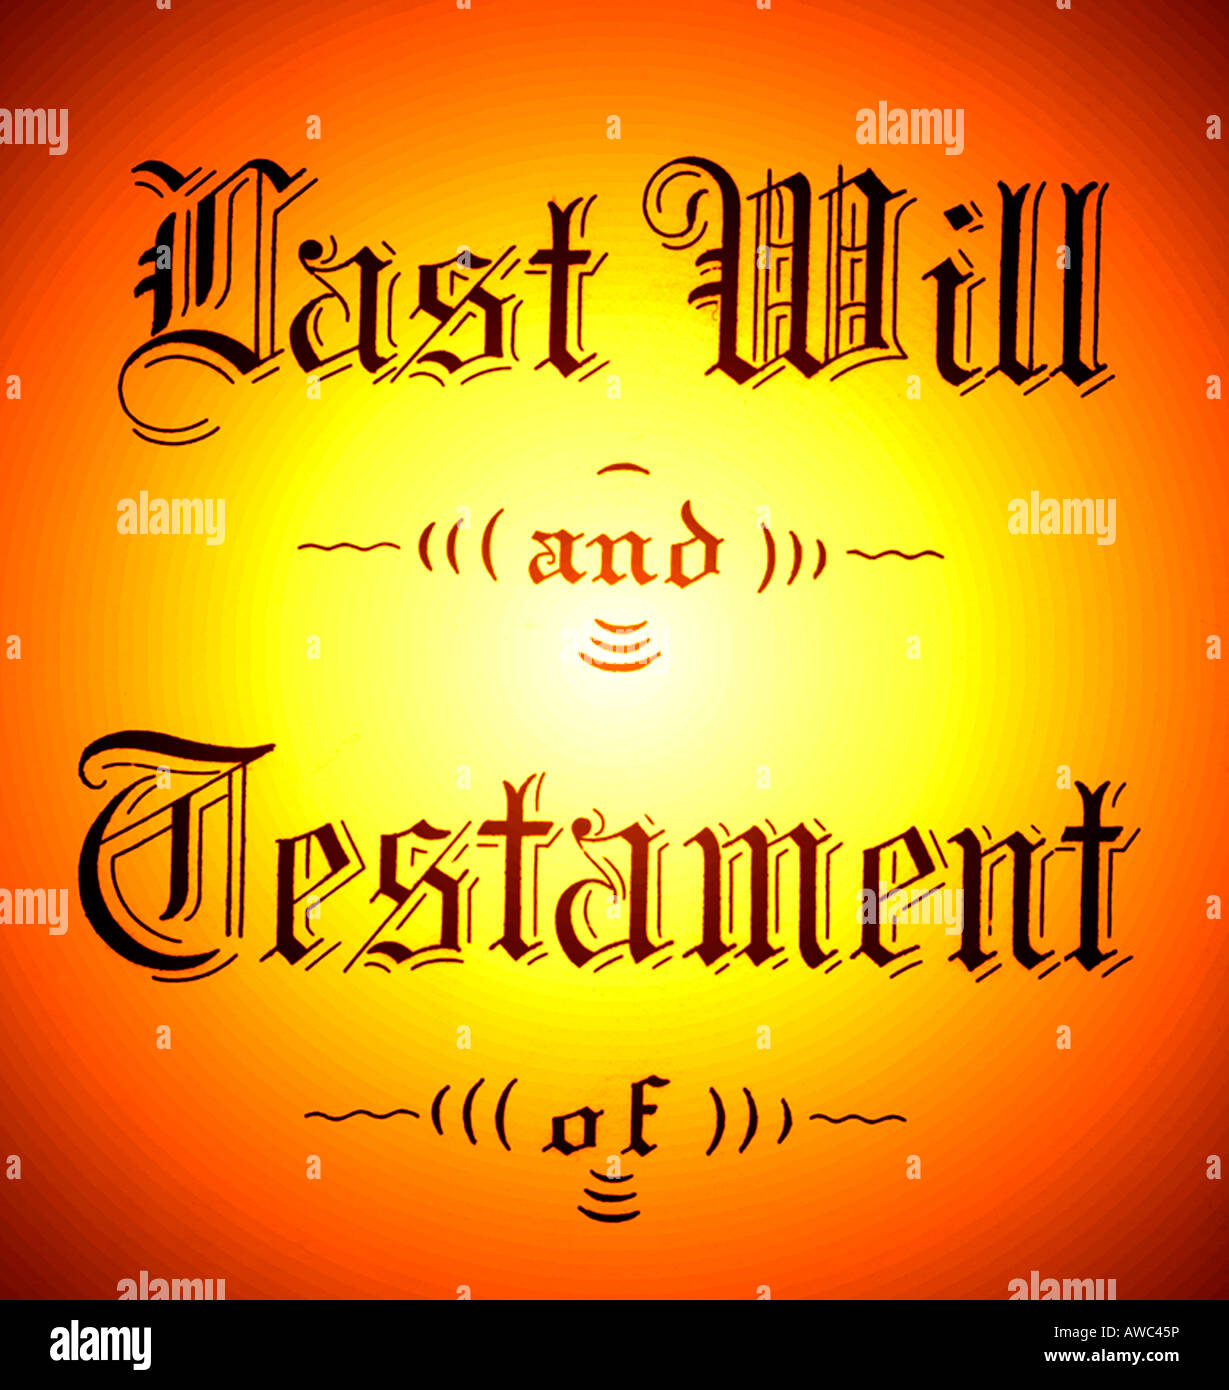 last will and testament legal document - Stock Image